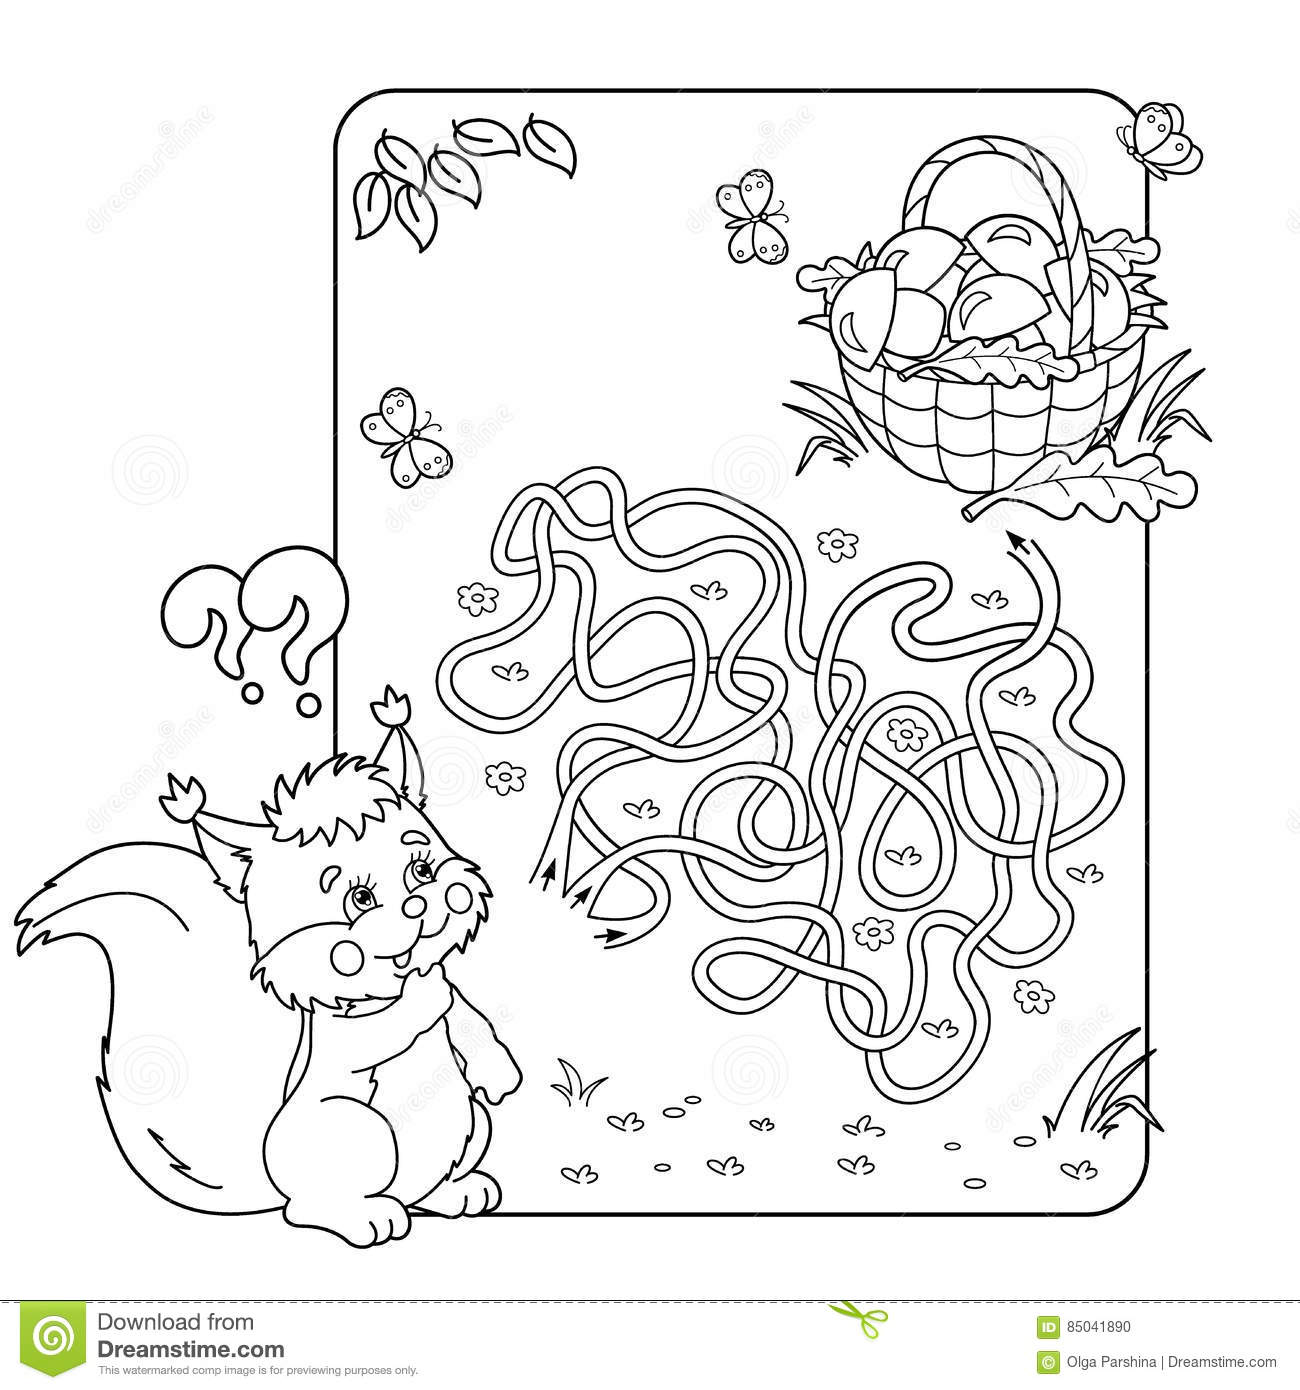 Tangled Ball Of Emotions Grief Sketch Coloring Page